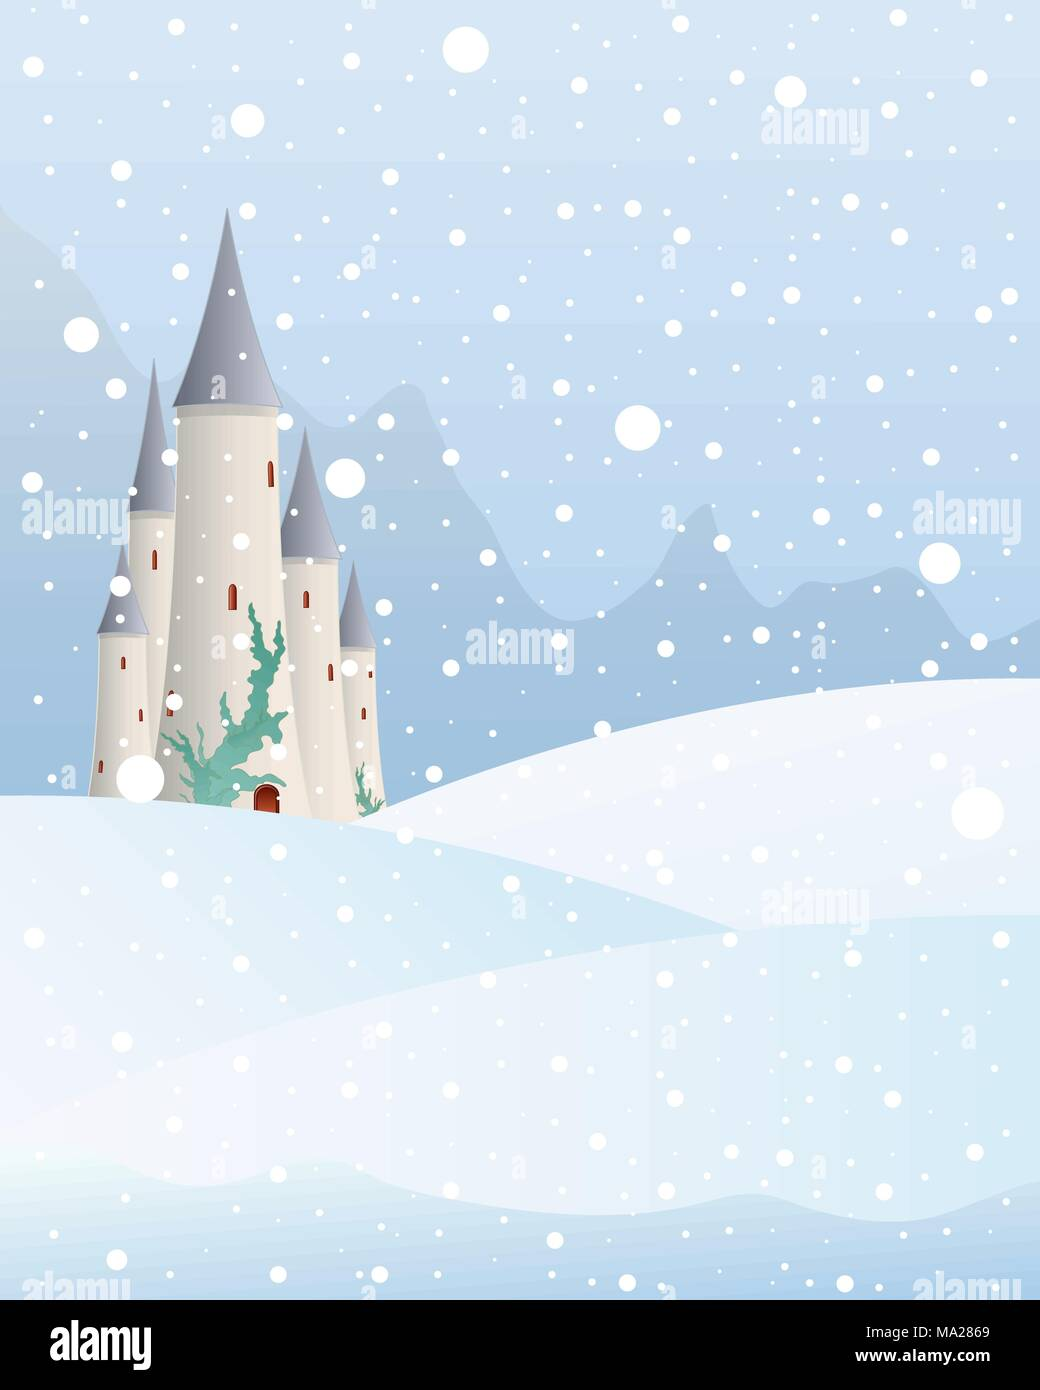 an illustration of a fairytale castle in a christmas mountain landscape with snow falling on a cold winter day - Christmas Mountain